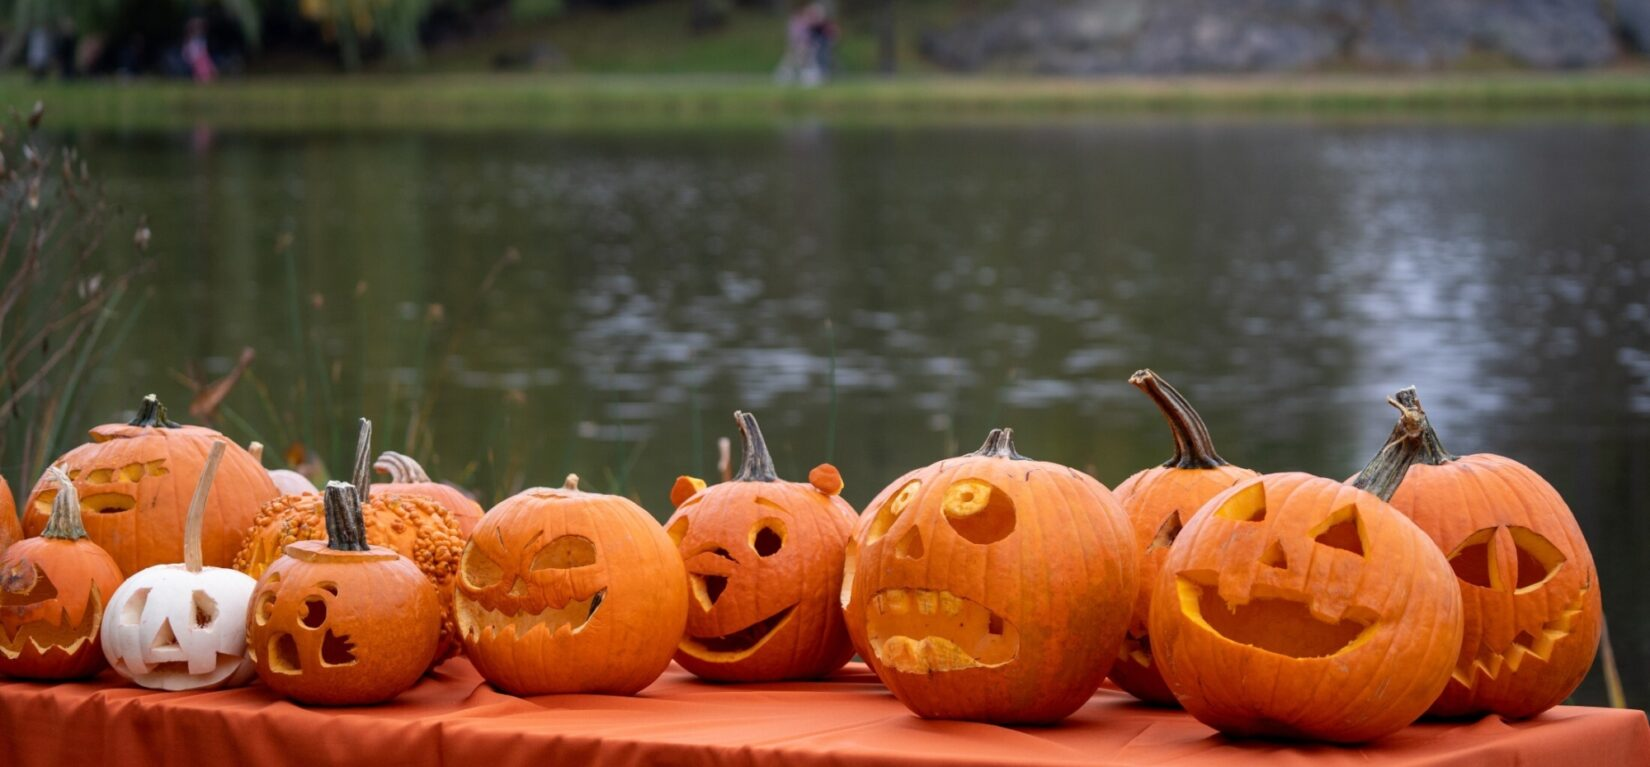 A variety of carved jack-o-lanterns are clustered on a table with the Meer as a backdrop.